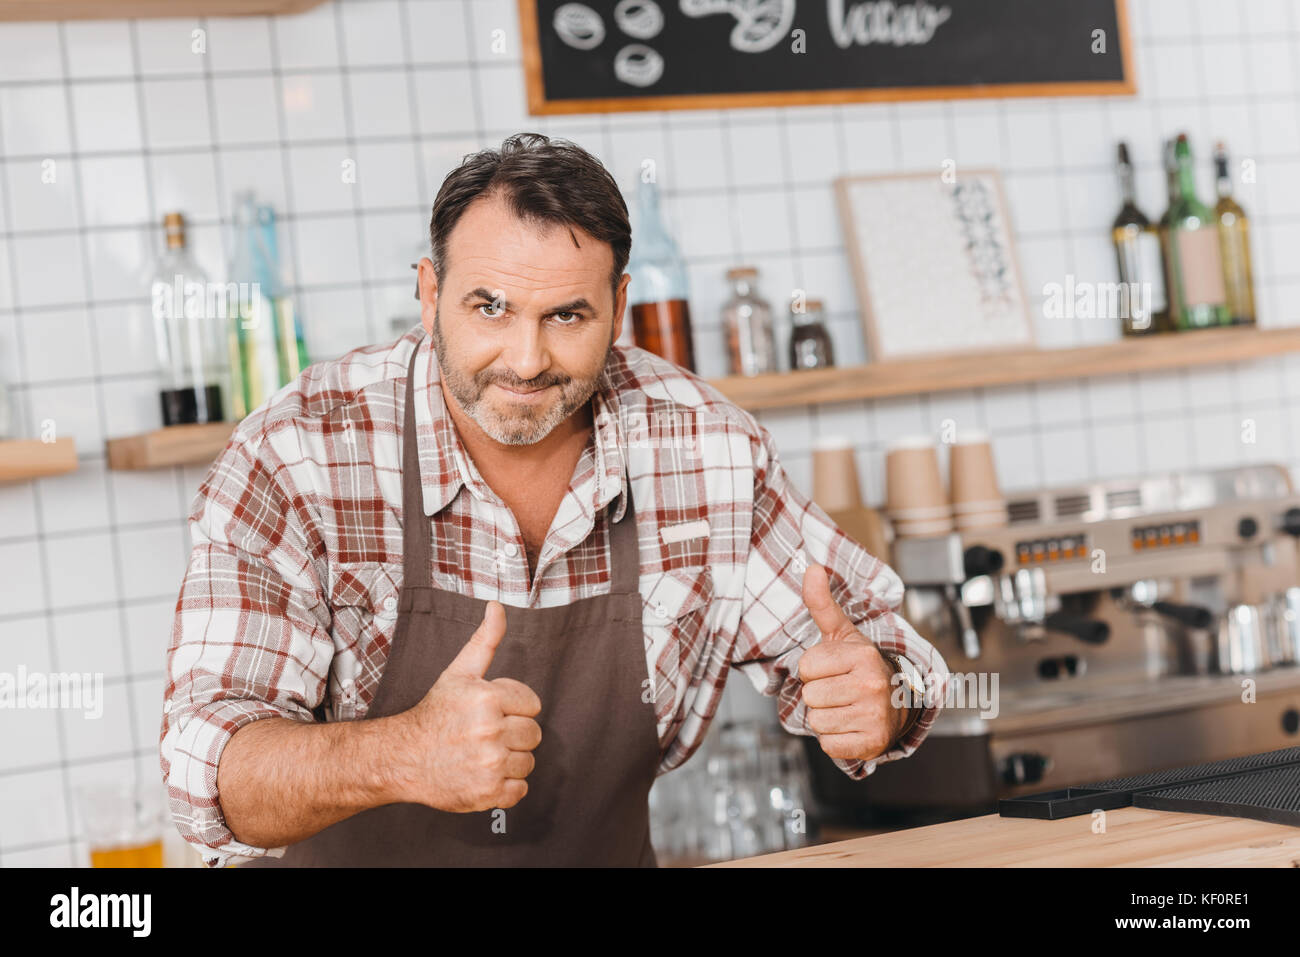 bartender showing thumbs up - Stock Image